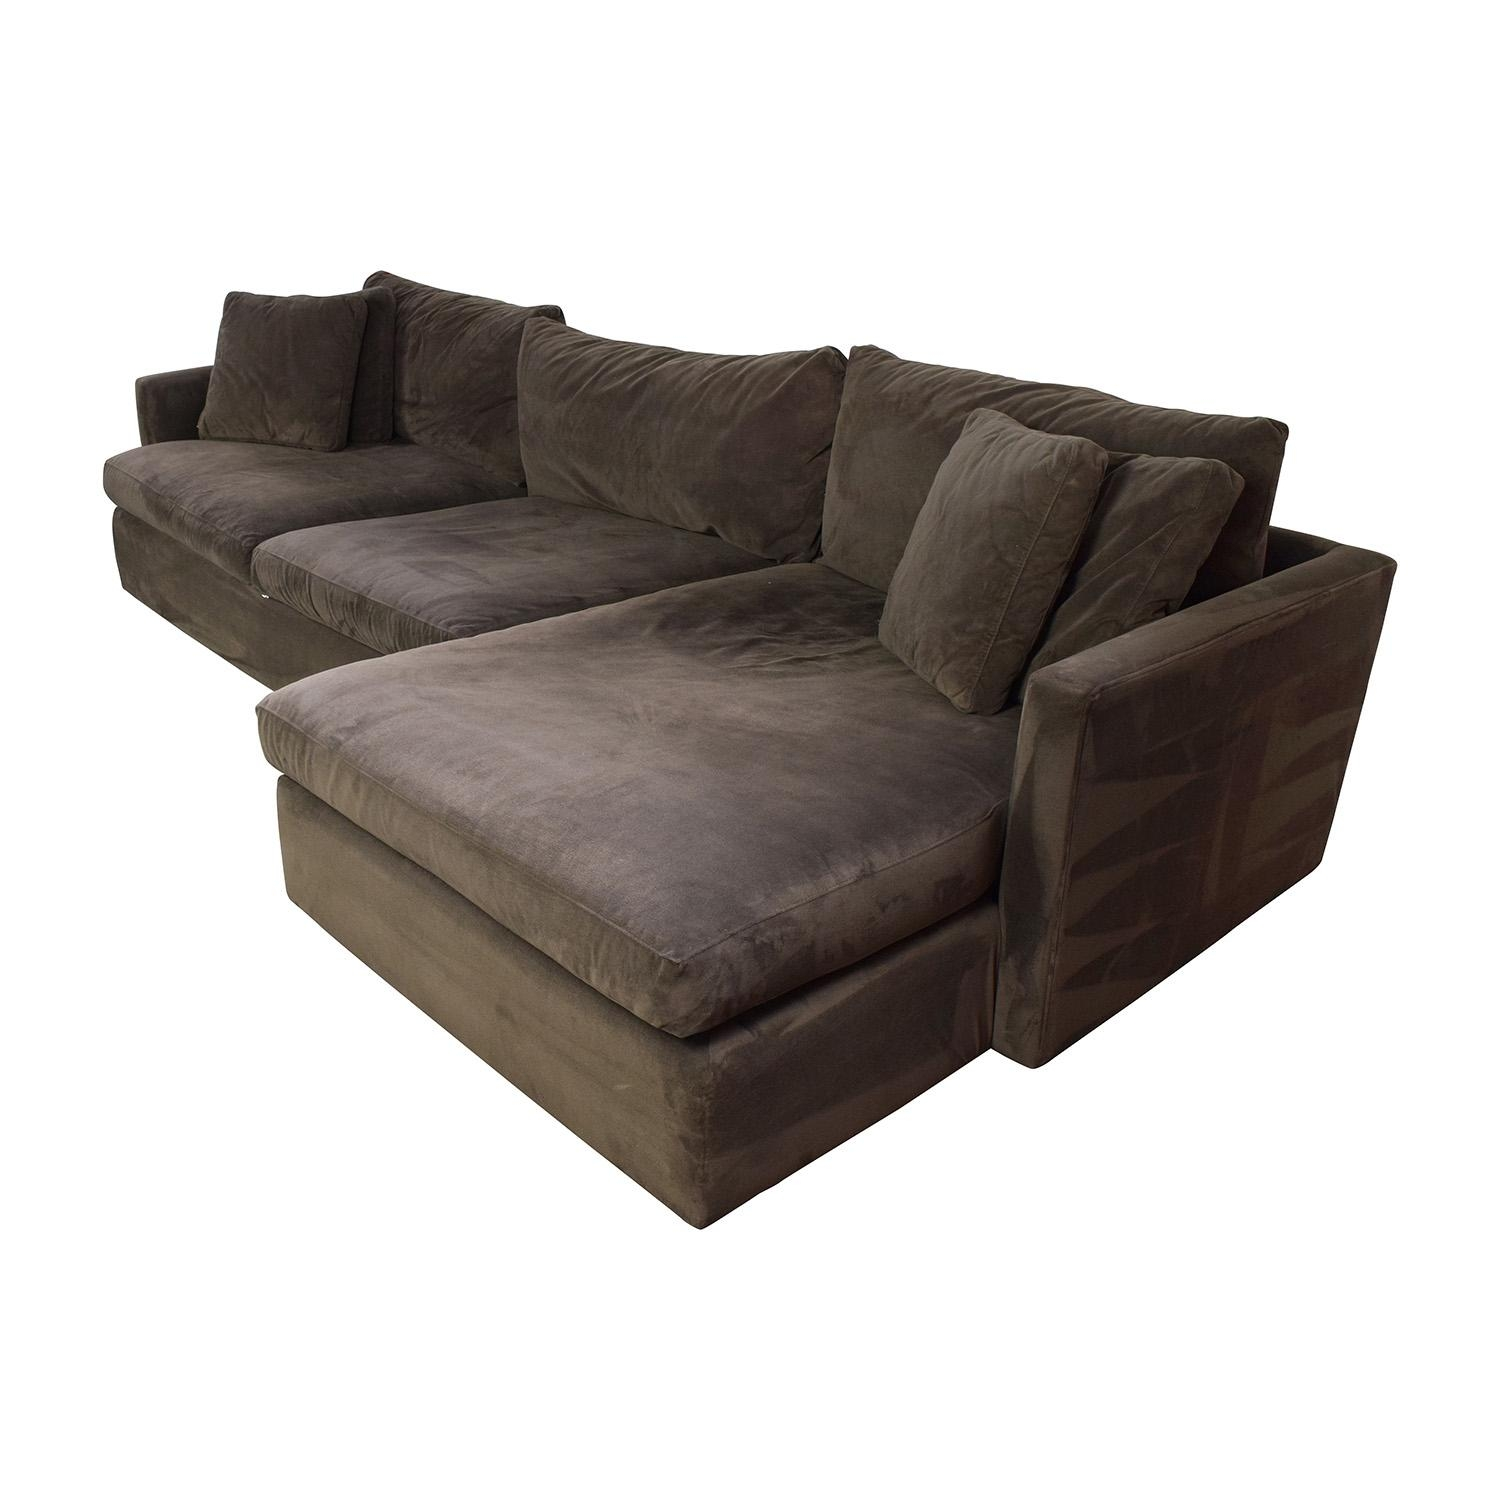 89% Off – Crate And Barrel Crate & Barrel Brown Left Arm Sectional Within Sectional Crate And Barrel (Image 9 of 20)